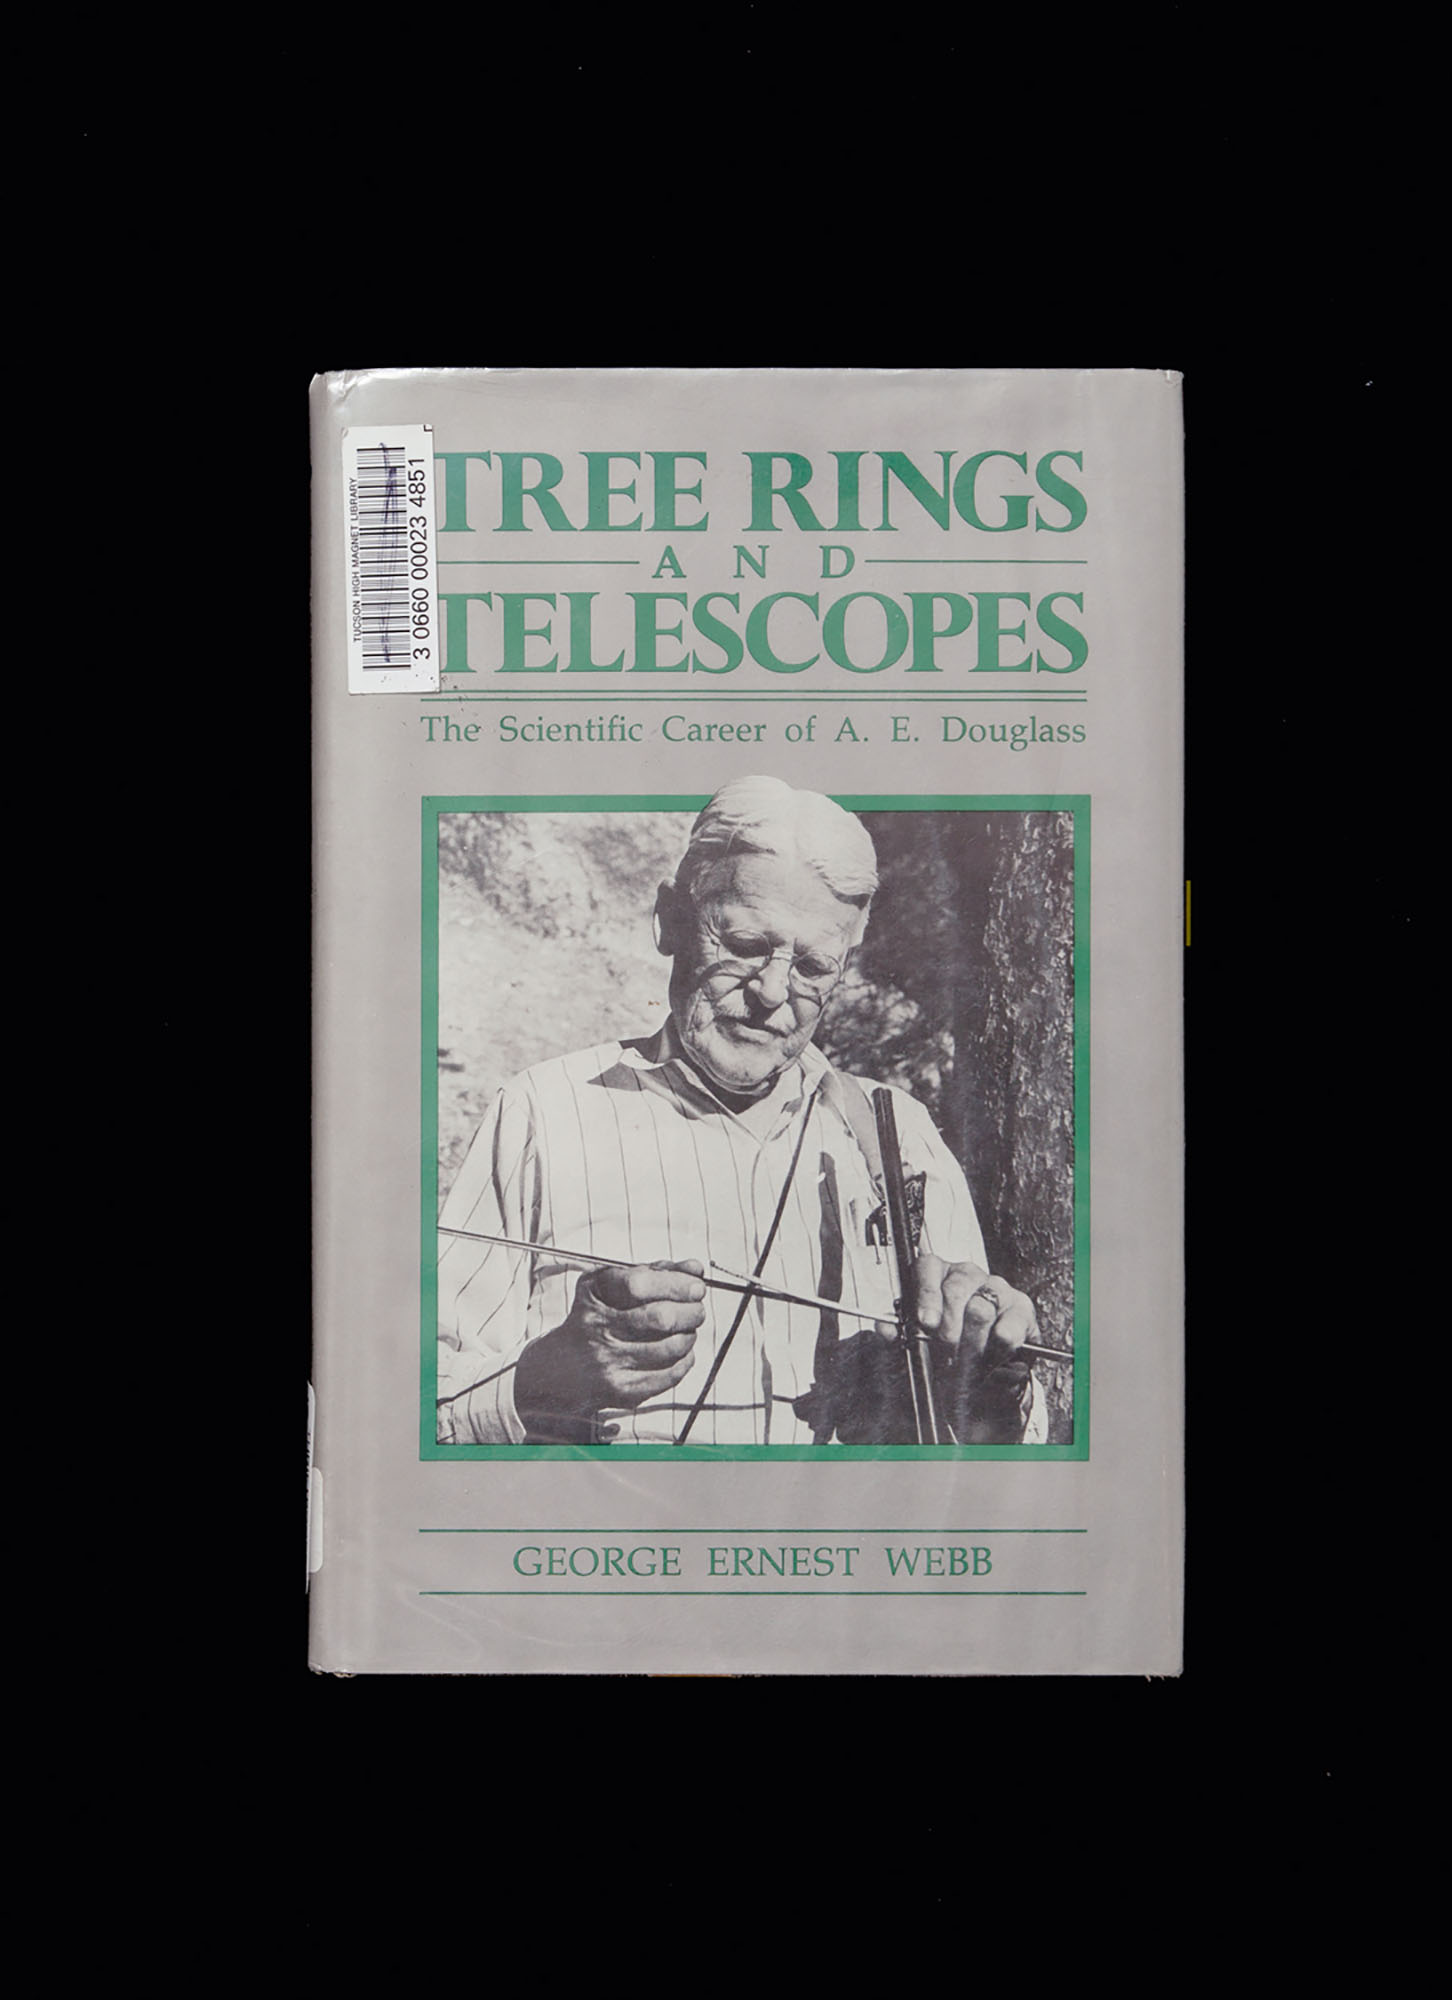 Front cover of George Ernst Webb, *Tree Rings and Telescopes: The Scientific Career of A.E. Douglass* (Tucson, Arizona: The University of Arizona Press, 1983). Reproduction photographer: Andrew Curtis.